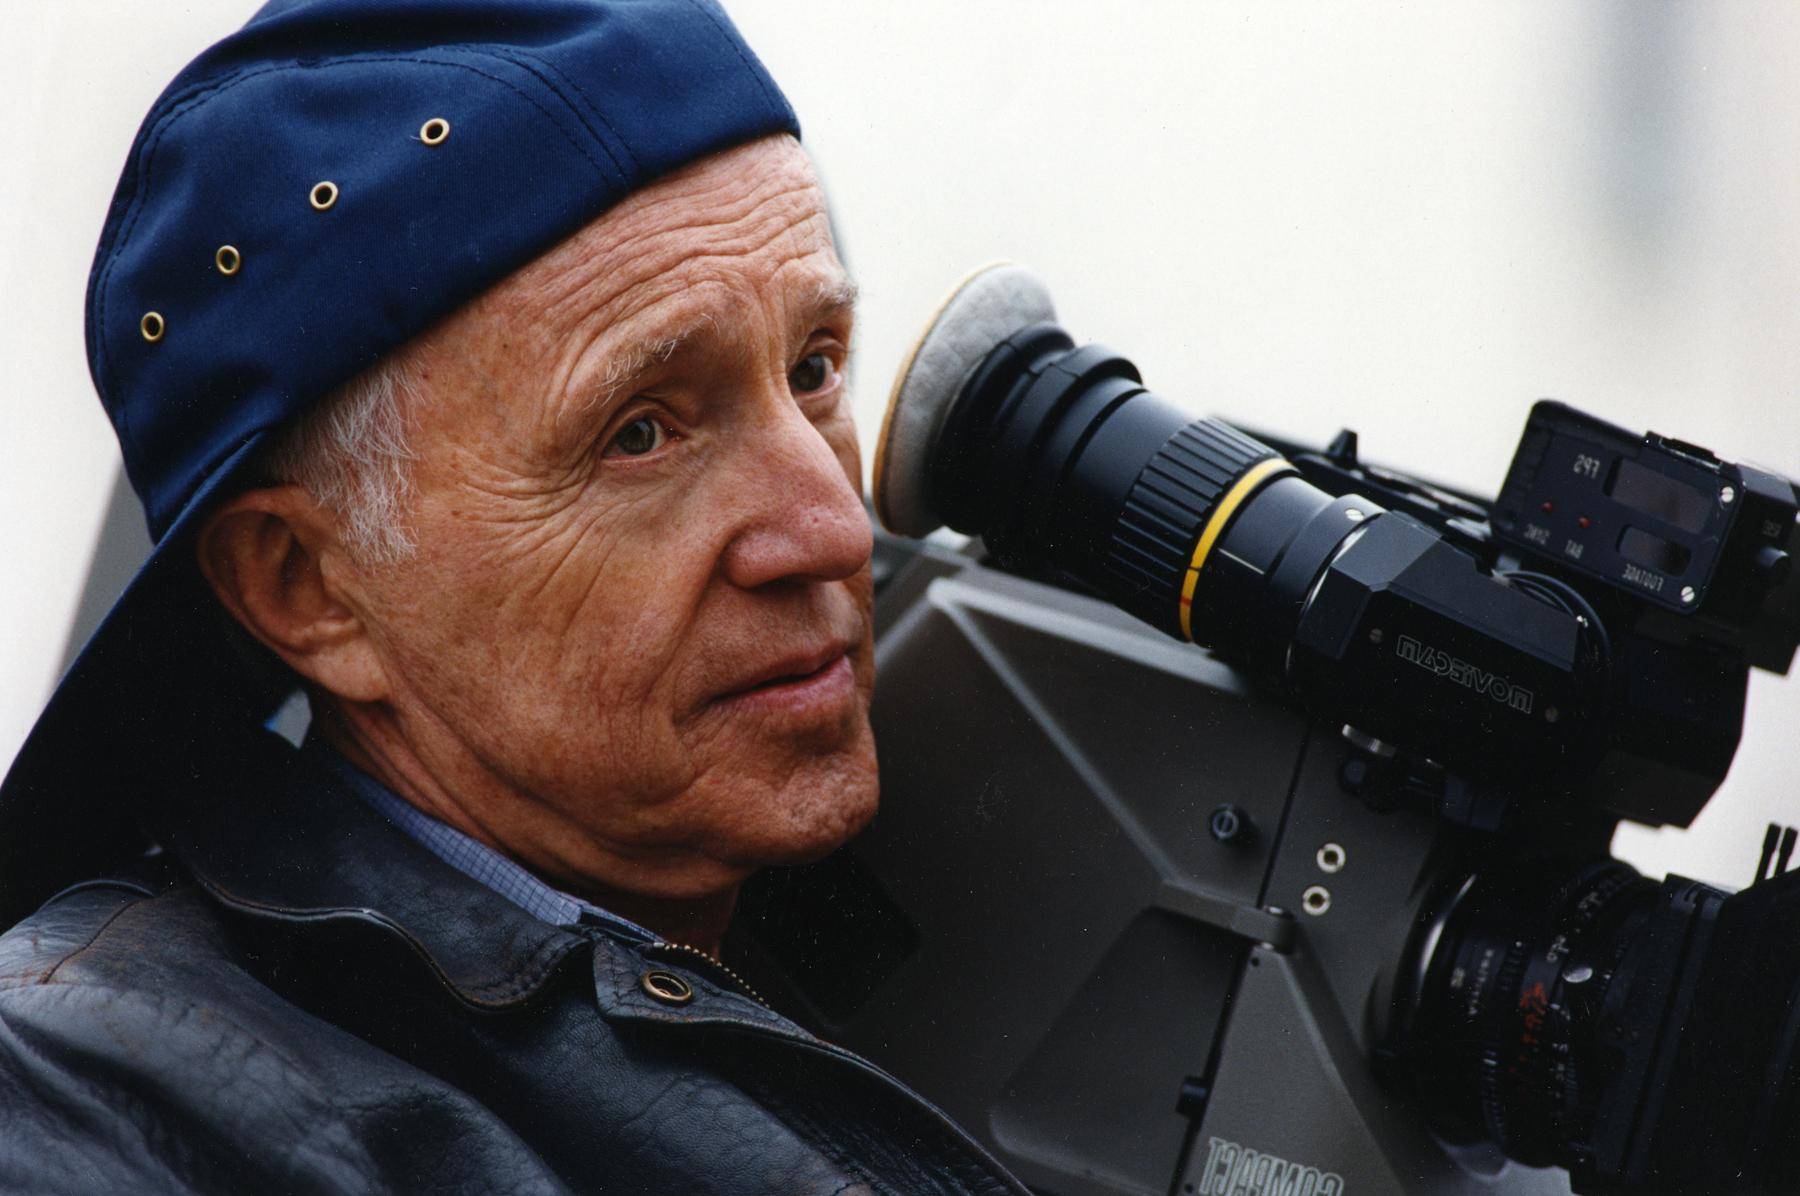 Ảnh của Haskell Wexler